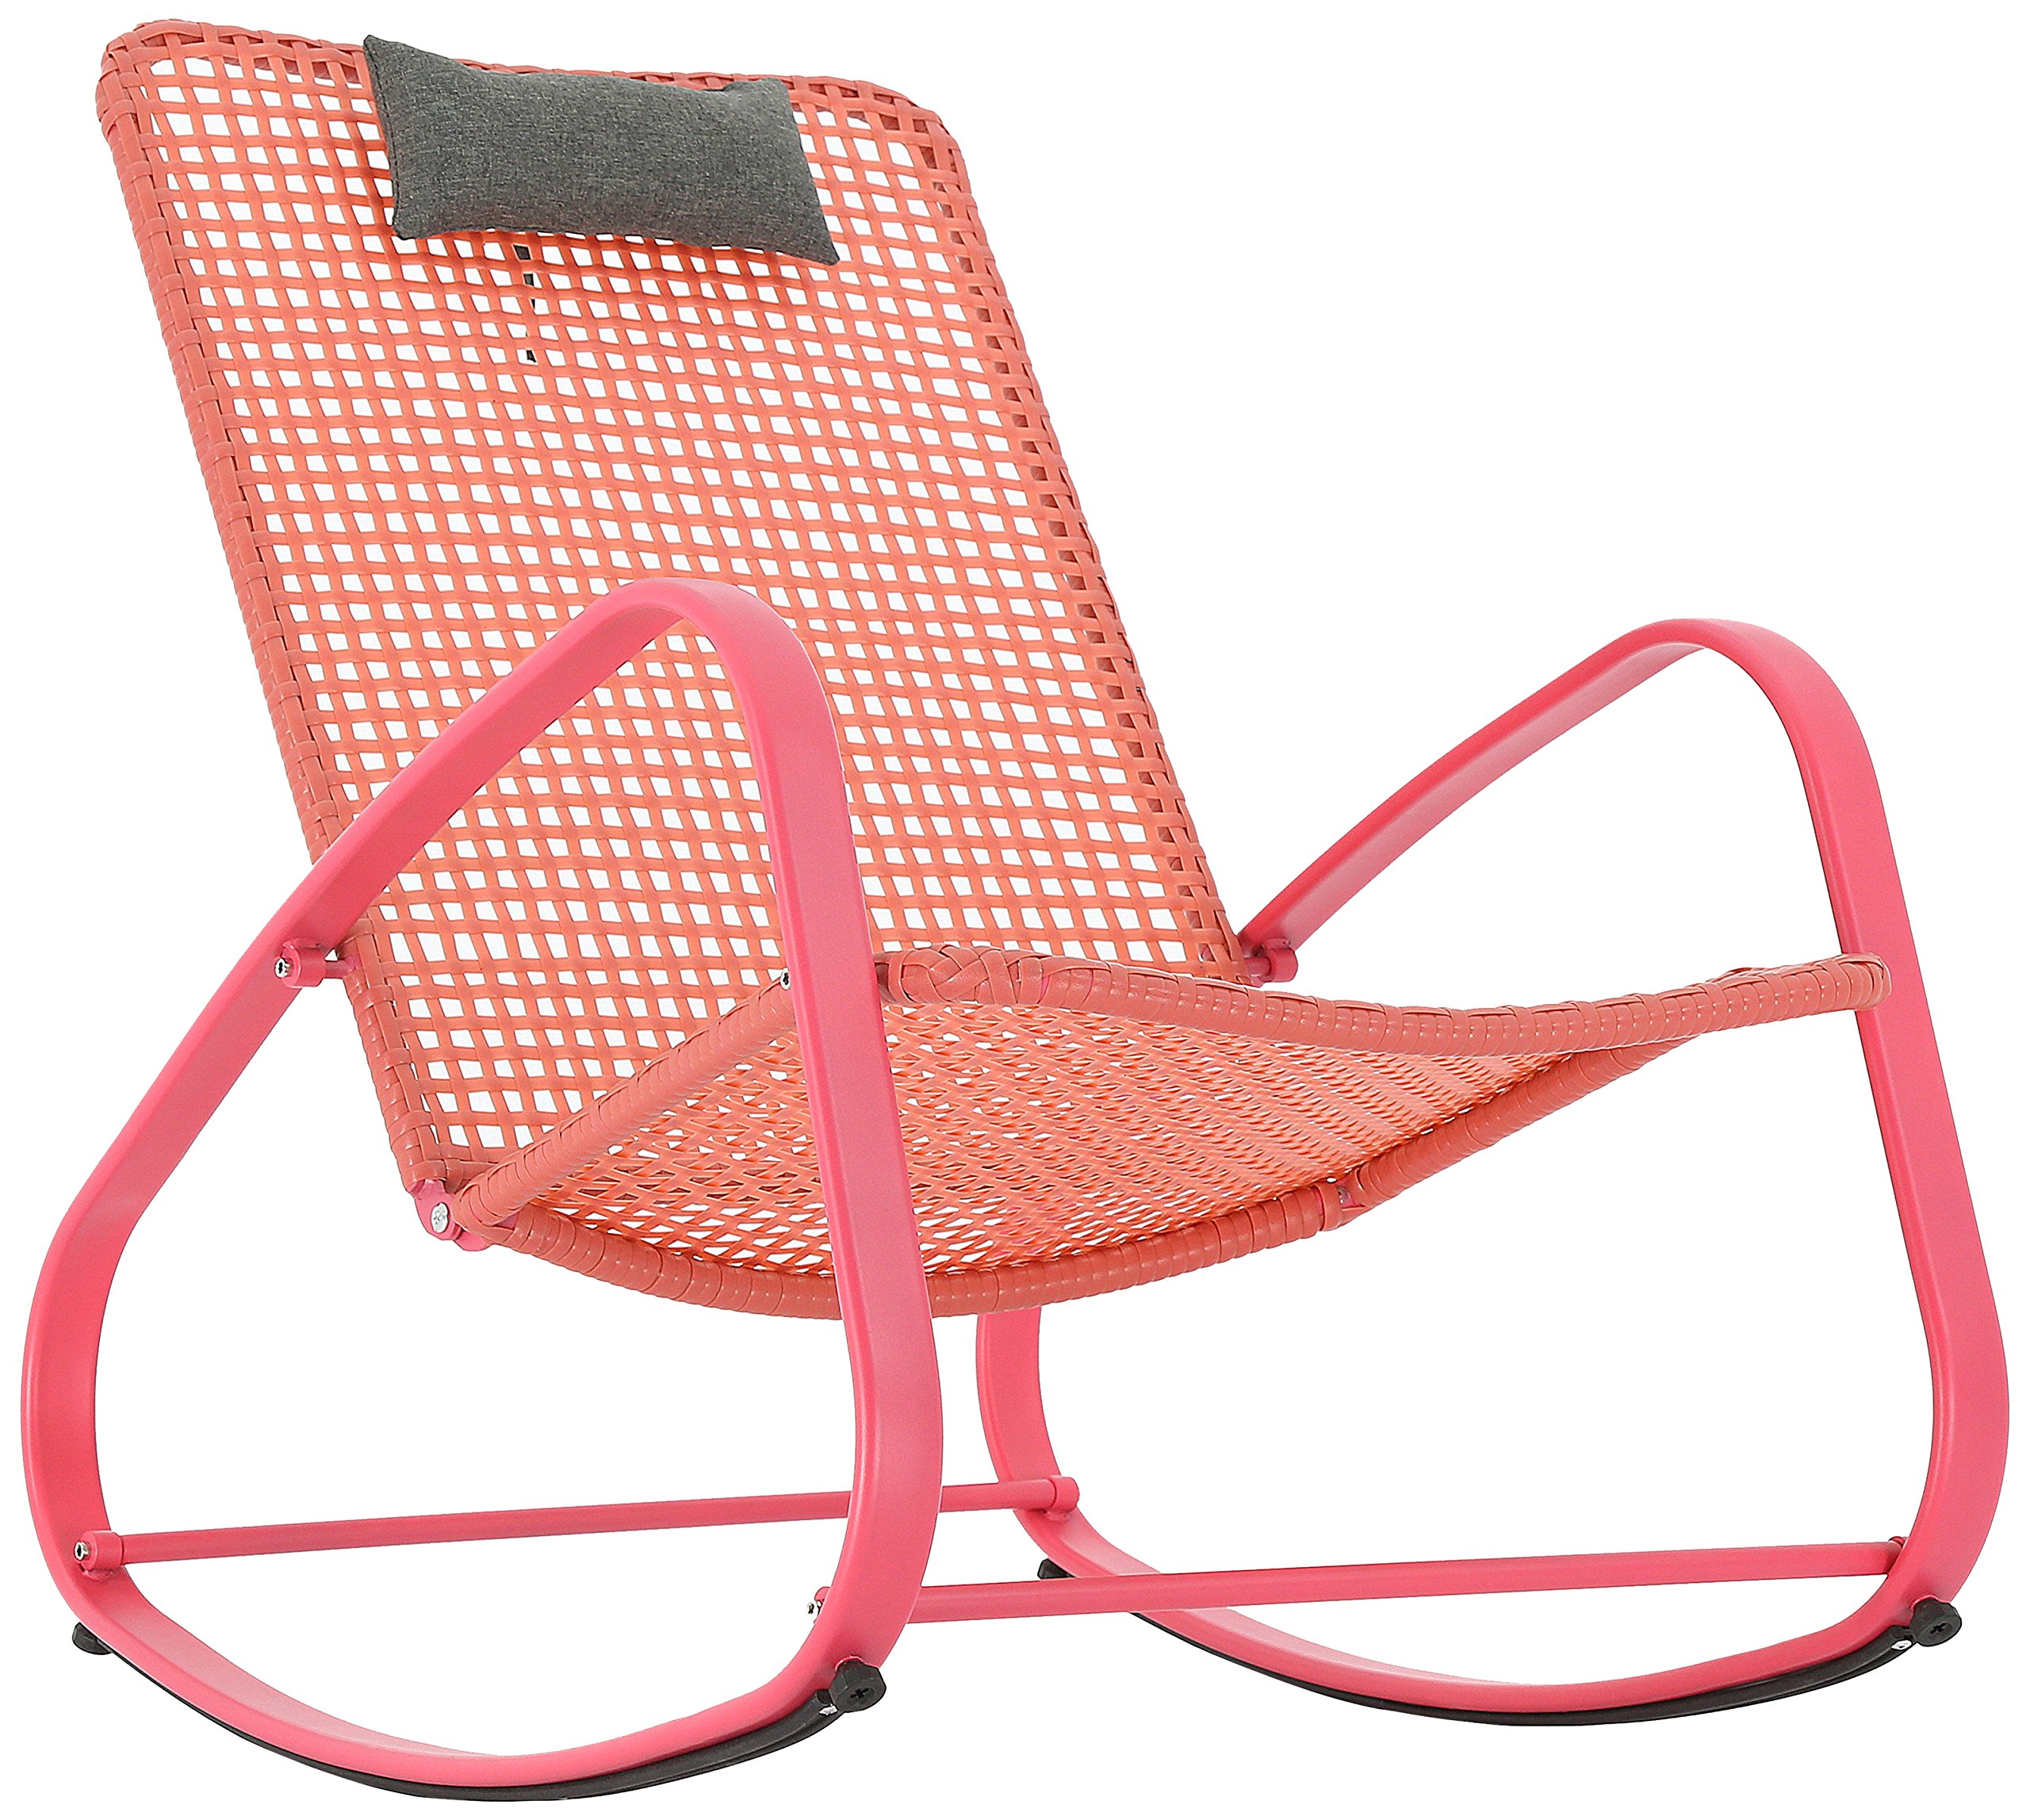 Baner Garden Indoor Outdoor Rocking Lounge Chair Porch Indoor Patio Headrest Furniture, Red (X62RD) - Made with Galvanized steel frame and PE rattan. Powder coated with UV protection The lightweight construction makes it especially easy to move around. Glide smoothly and quietly to give you ultimate outdoor relaxation. Very sturdy, support up to 300 lbs Ideal for outdoor use with its weather-resistant material and design. Particularly suitable for patio yards, gardens, porches, or indoors if you want. Brings you the best relaxation - patio-furniture, patio-chairs, patio - 91gyK1pkozL -